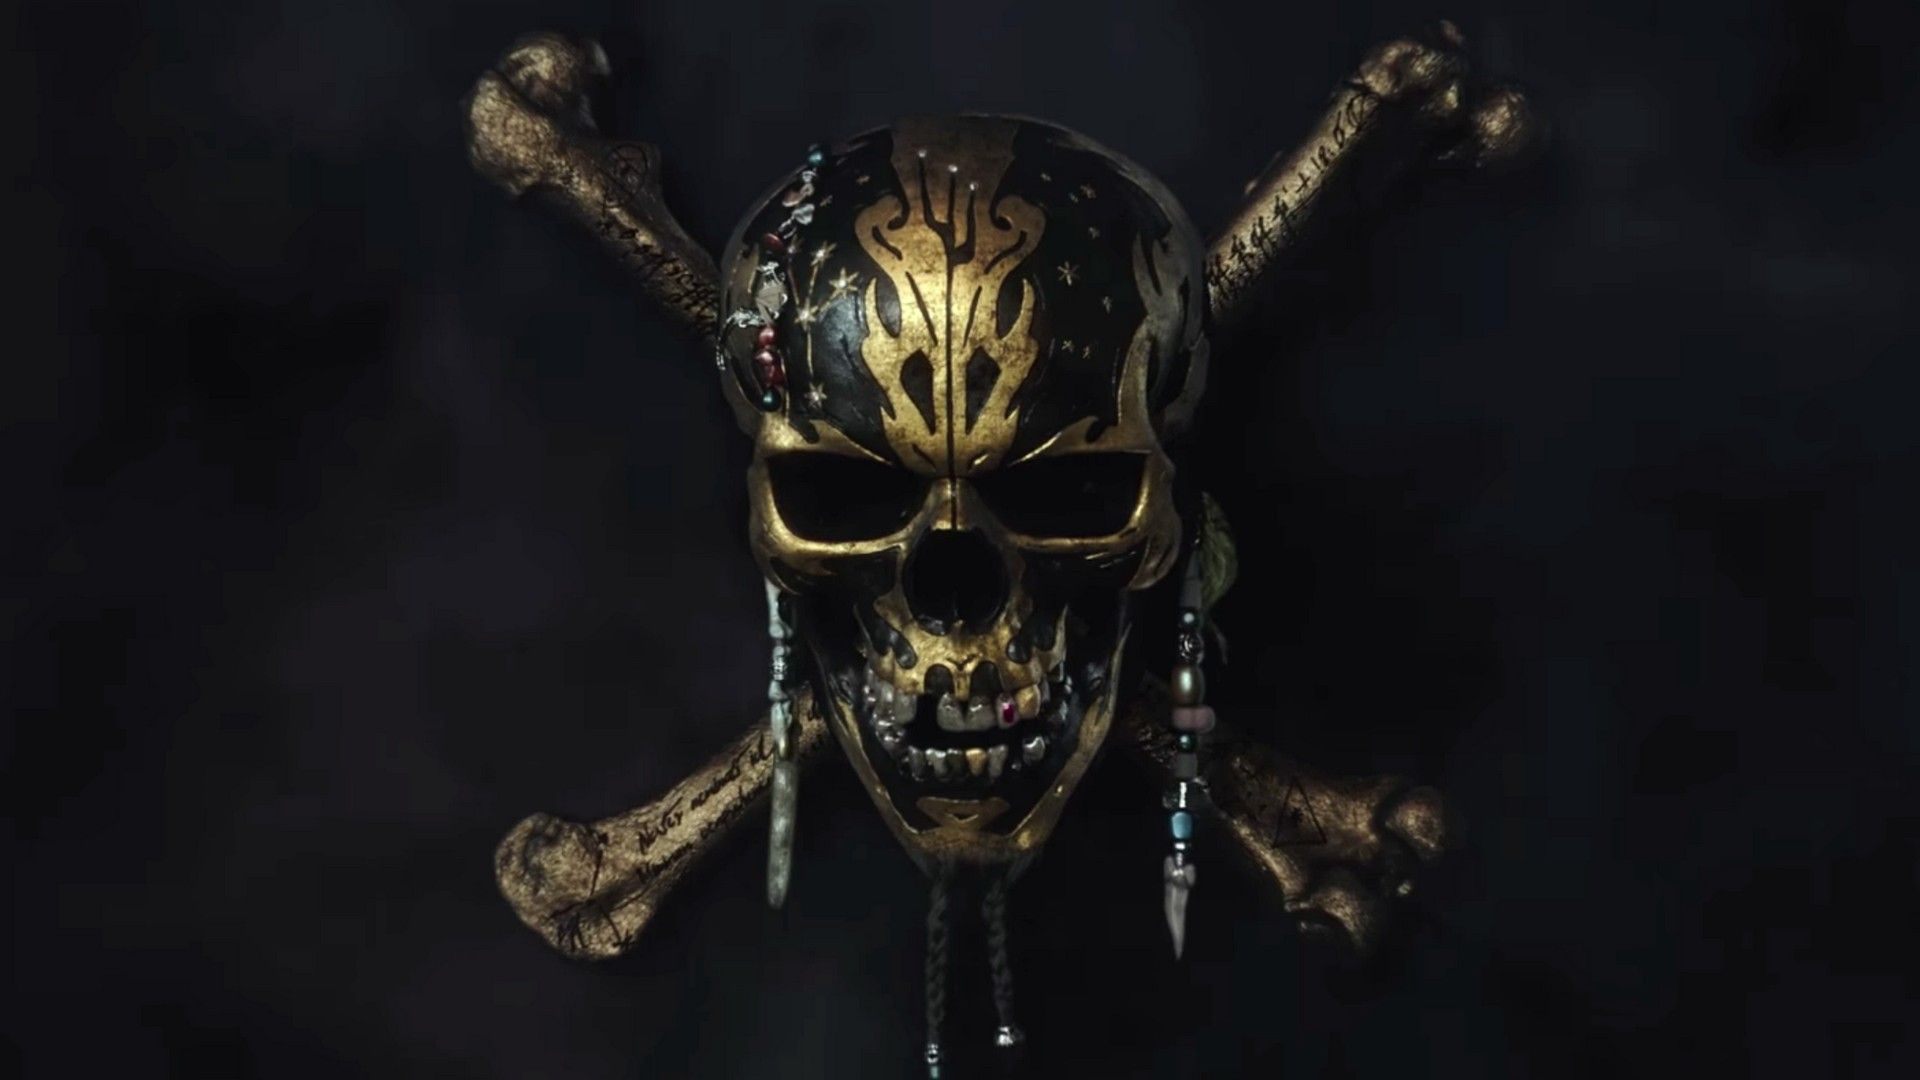 hd pirates of the caribbean: dead men tell no tales wallpaper